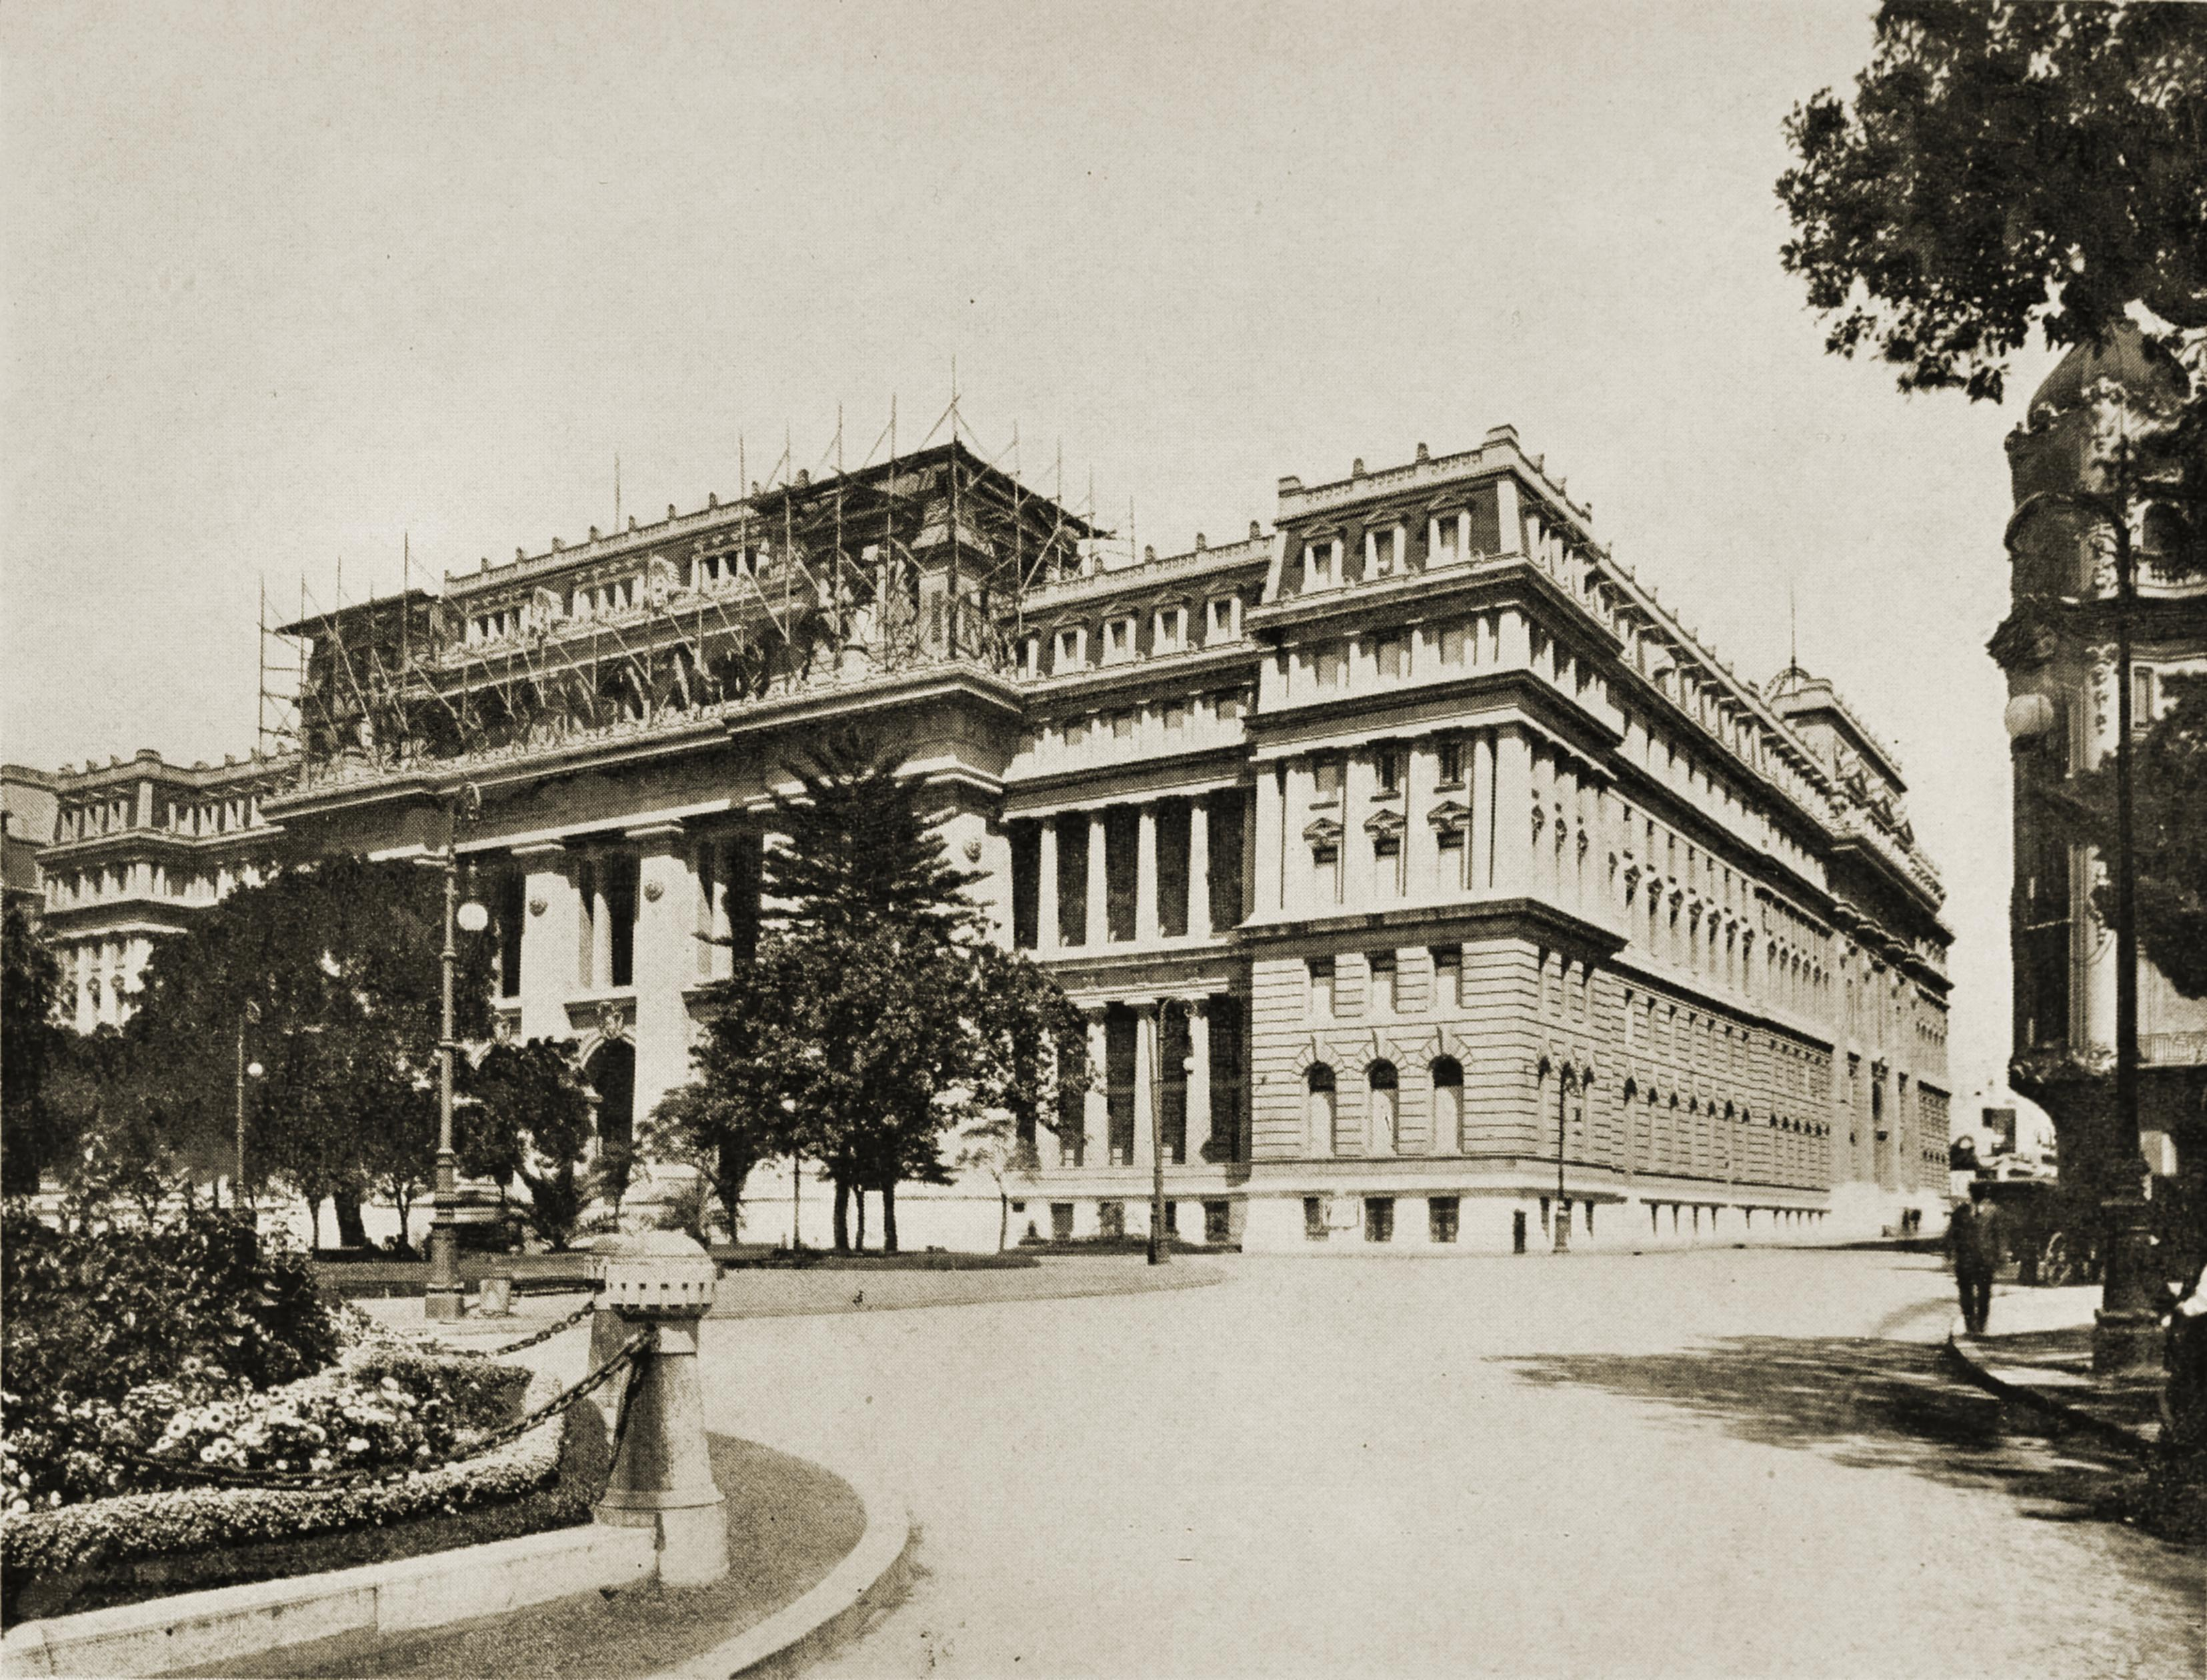 Tribunales (Palace of Justice), Buenos Aires, Argentina about 1917